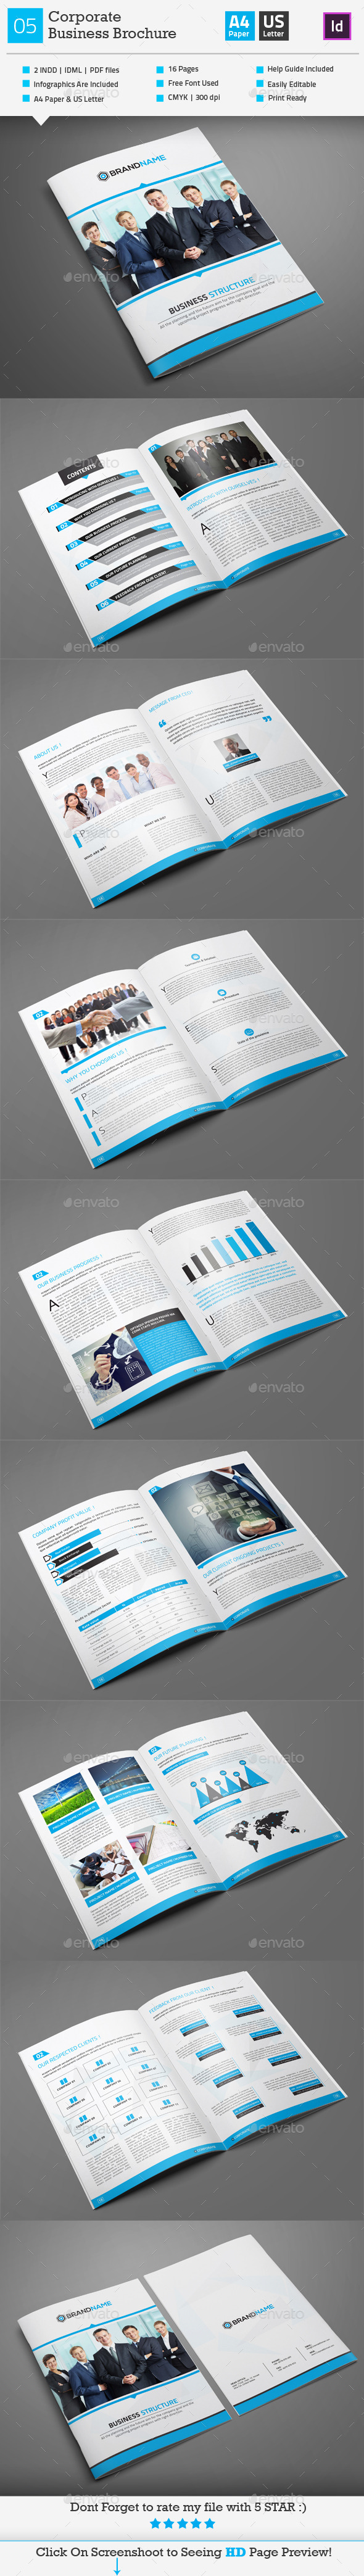 GraphicRiver Corporate Business Brochure 05 9917375